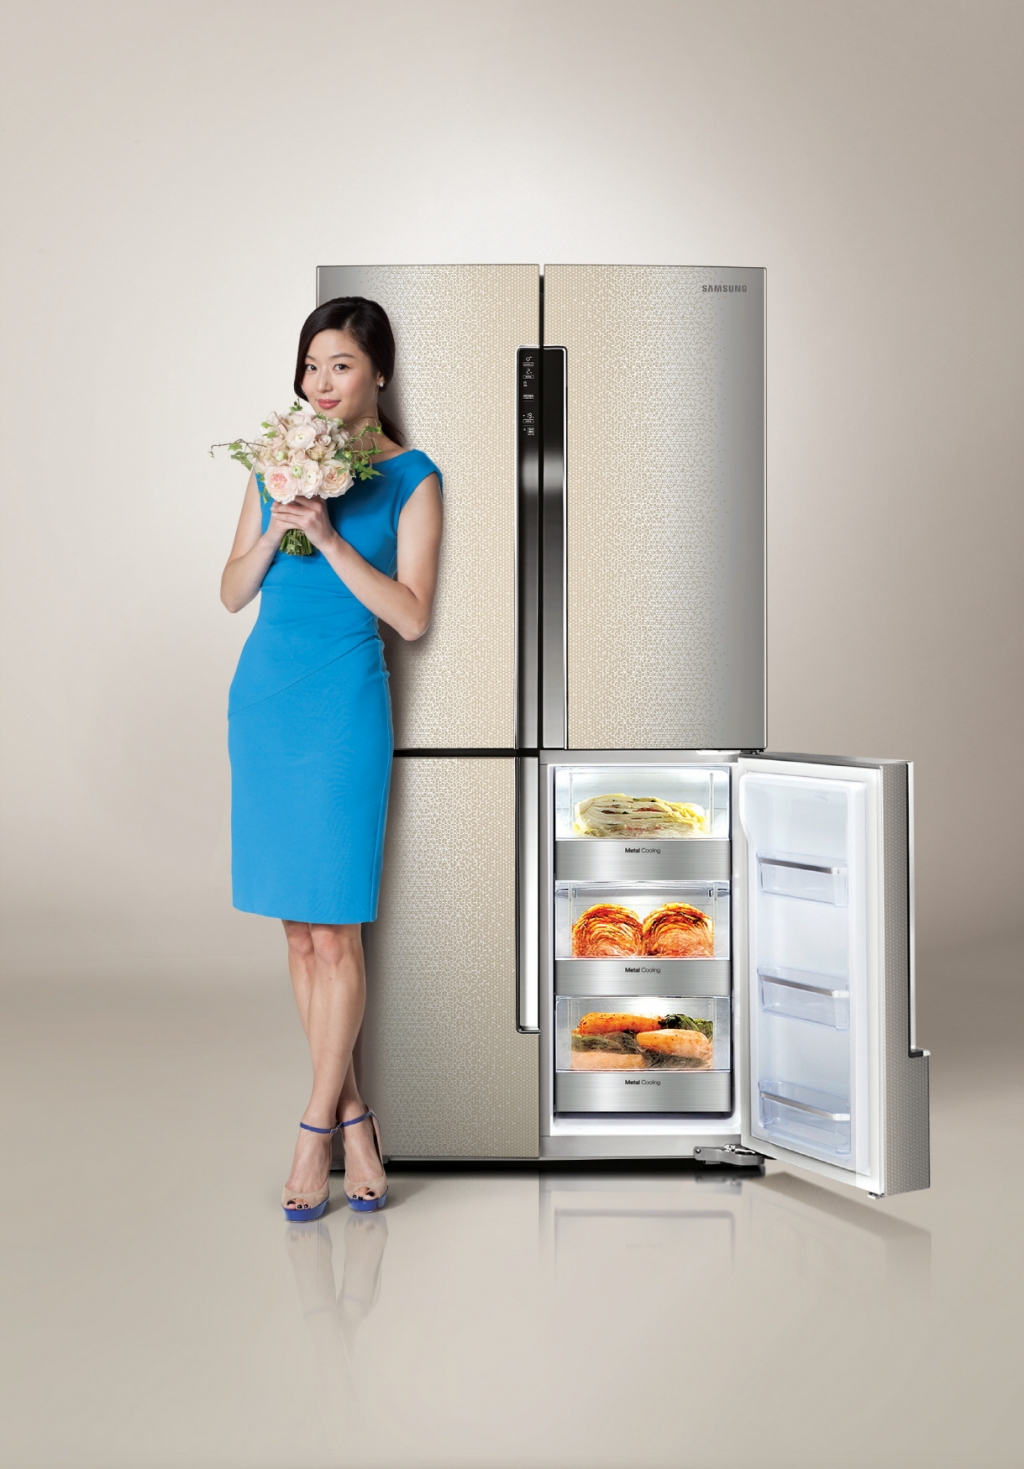 Samsung to Release Zipel T9000 Kimchi Plus for the Newlyweds